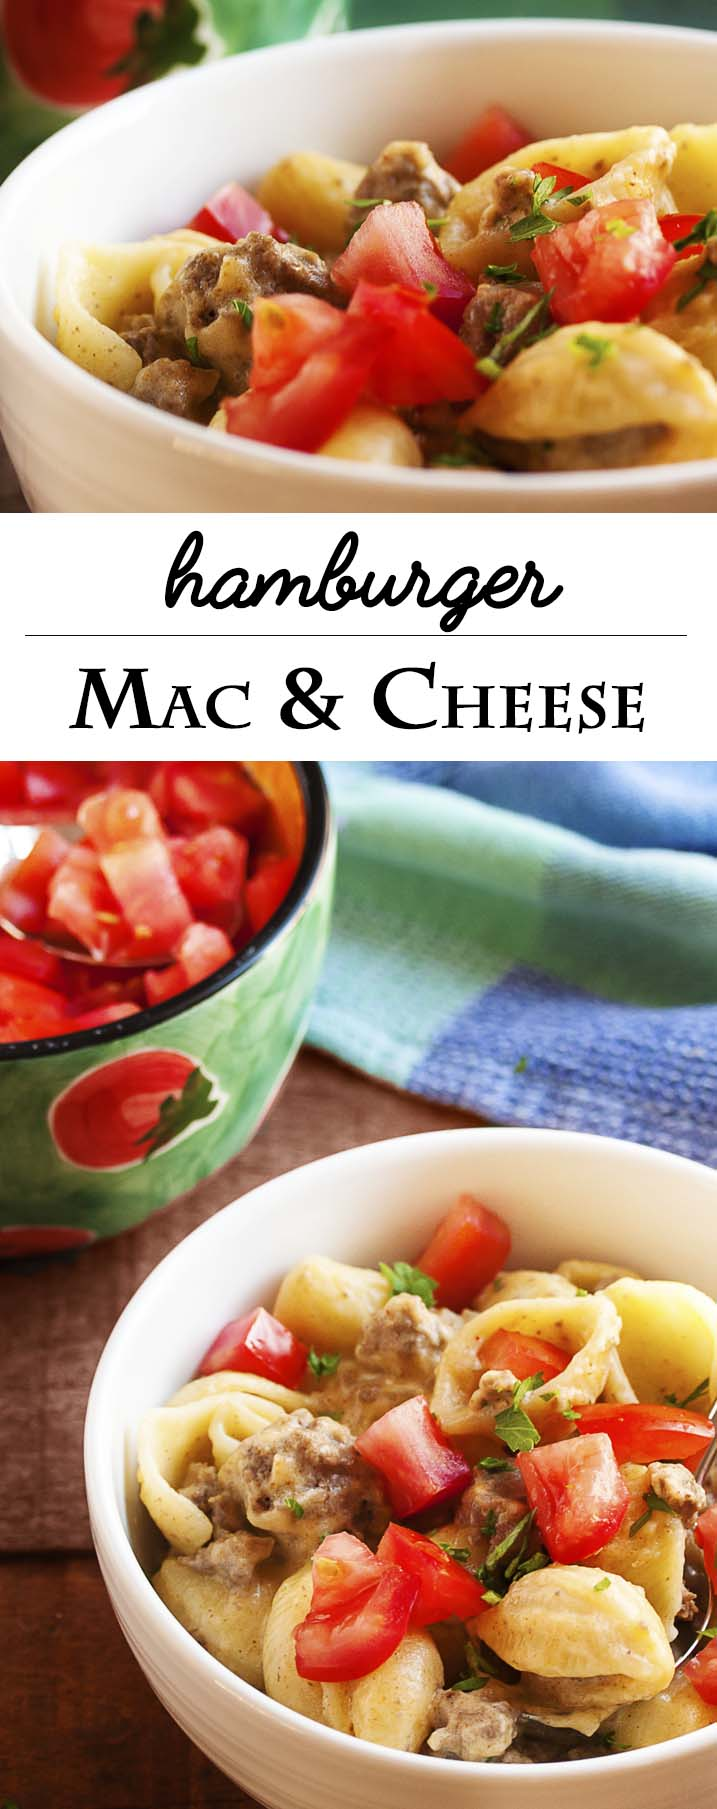 Hamburger Mac and Cheese - This kid-pleasing, stove-top mac and cheese combines ground beef, sharp cheddar, and diced tomatoes to make a great, quick weeknight meal. | justalittlebitofbacon.com